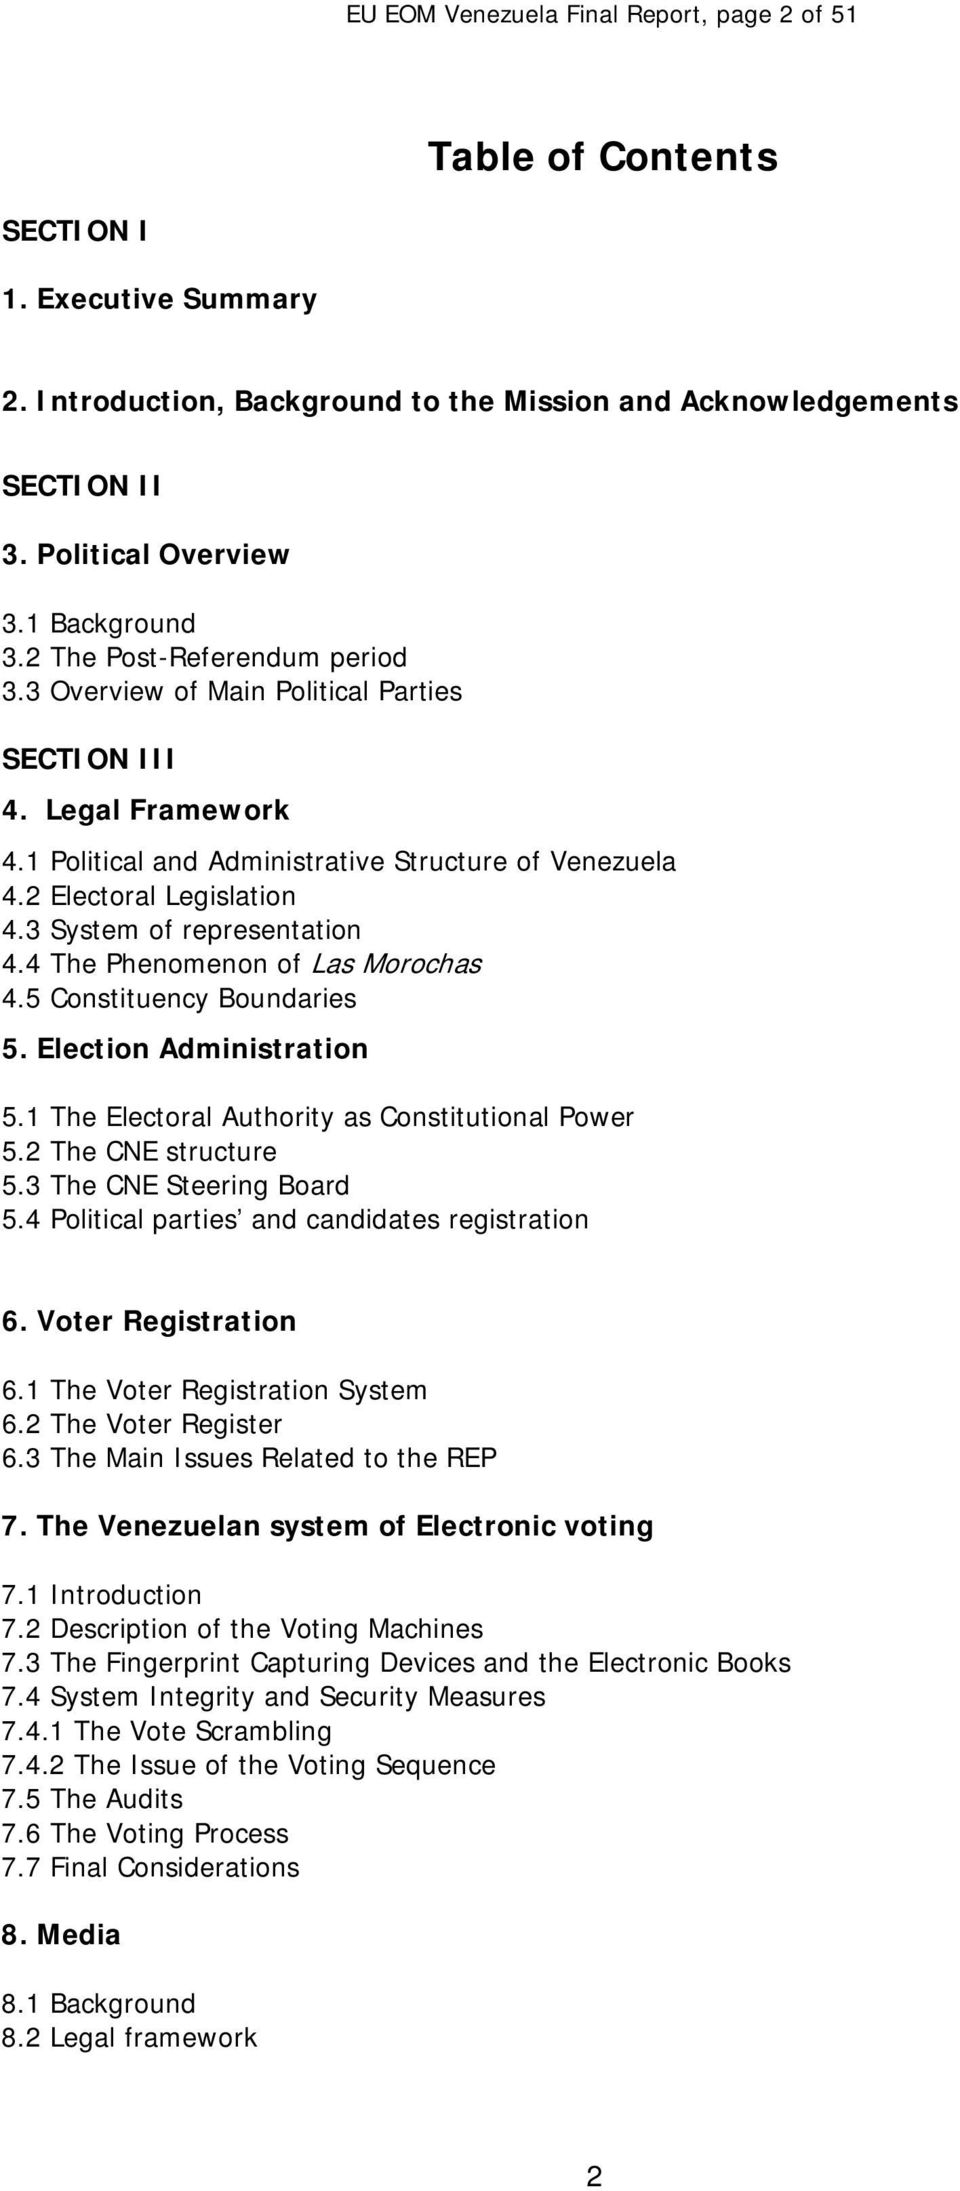 3 System of representation 4.4 The Phenomenon of Las Morochas 4.5 Constituency Boundaries 5. Election Administration 5.1 The Electoral Authority as Constitutional Power 5.2 The CNE structure 5.